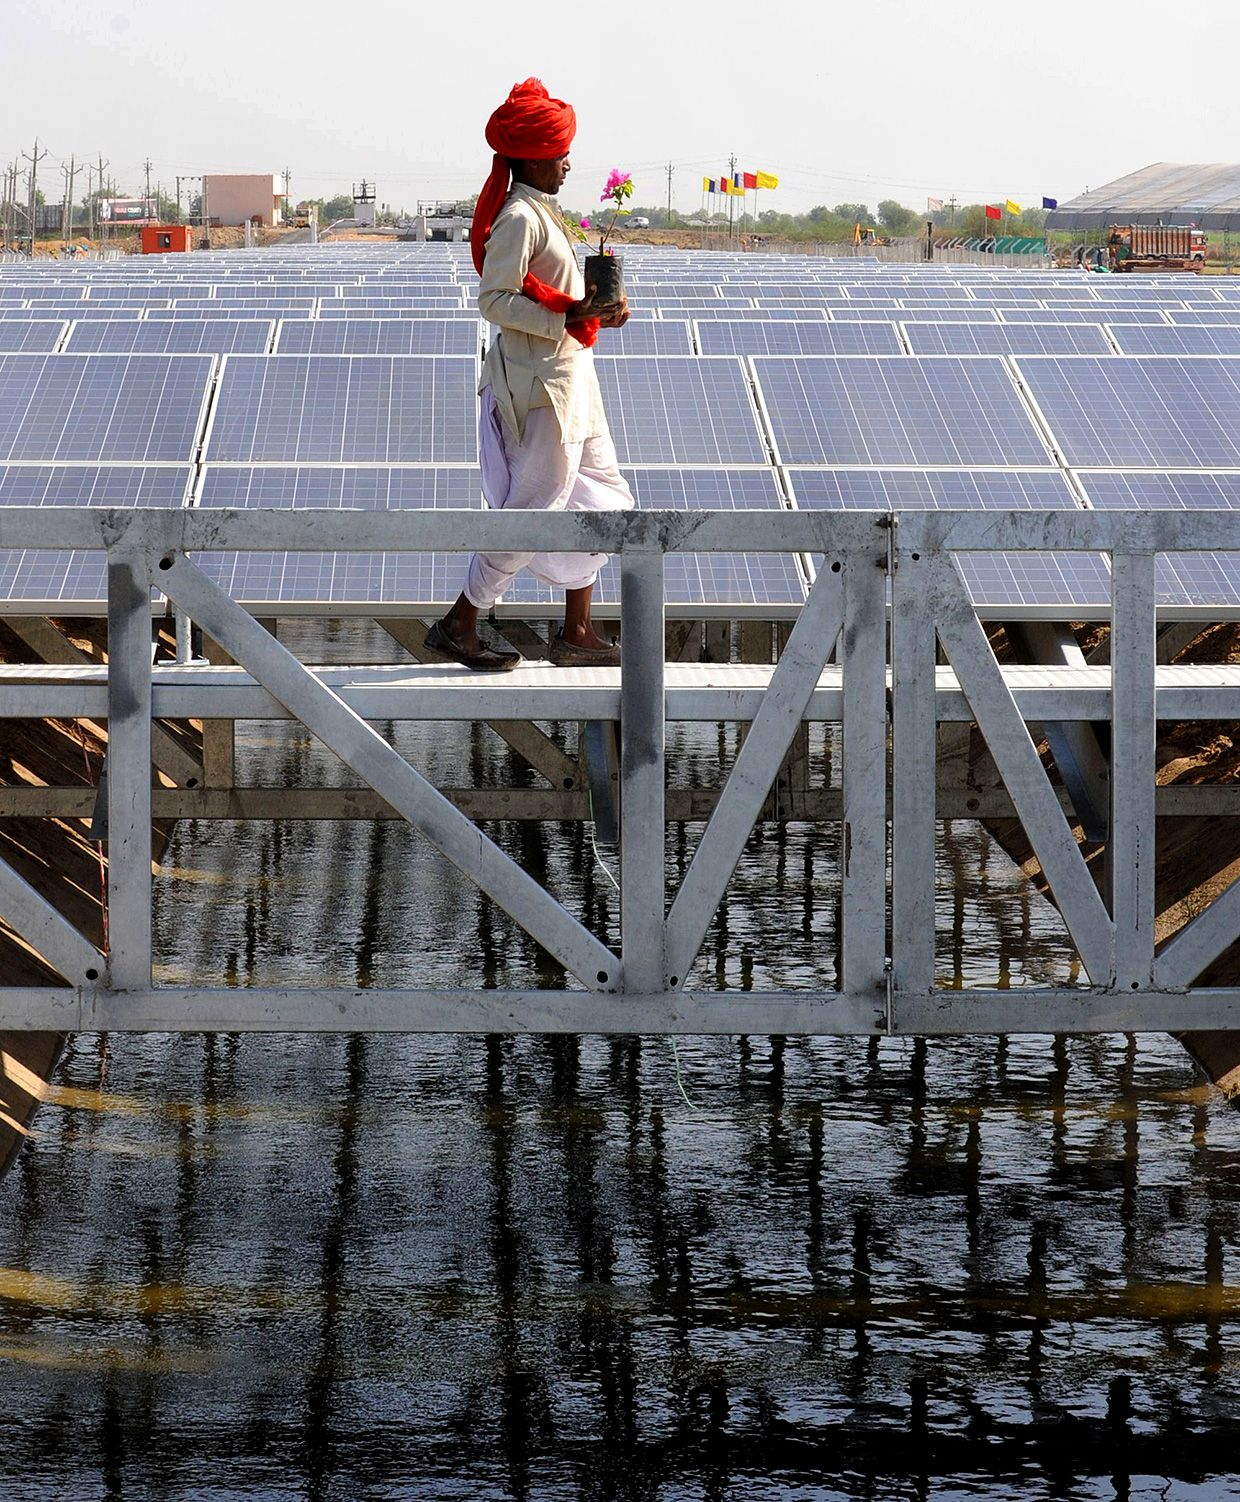 An Indian worker crosses solar panel canal in India.